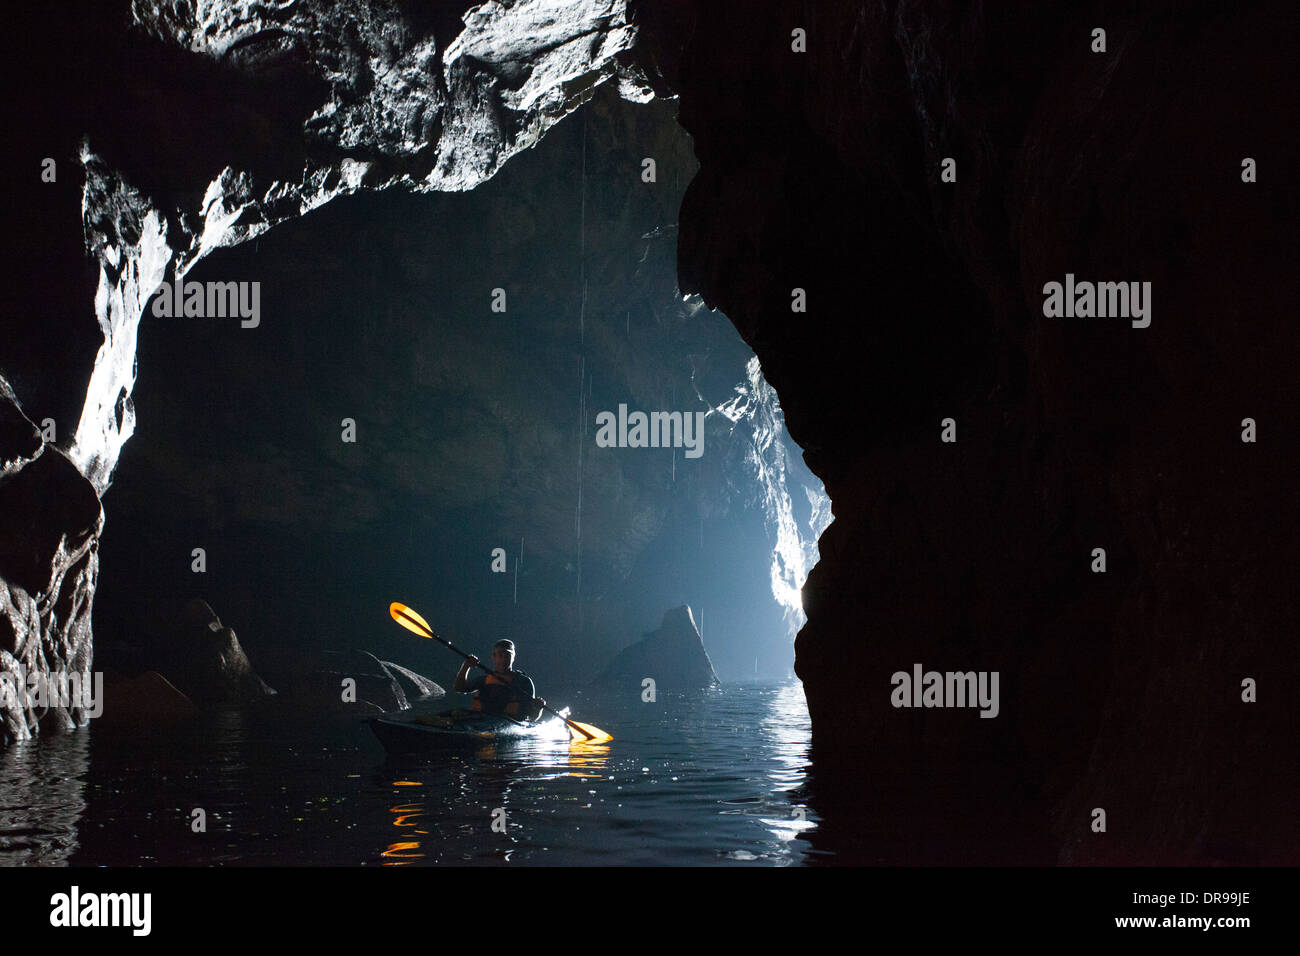 Sea kayaker in a cave beneath the Slieve League cliffs, County Donegal, Ireland. - Stock Image